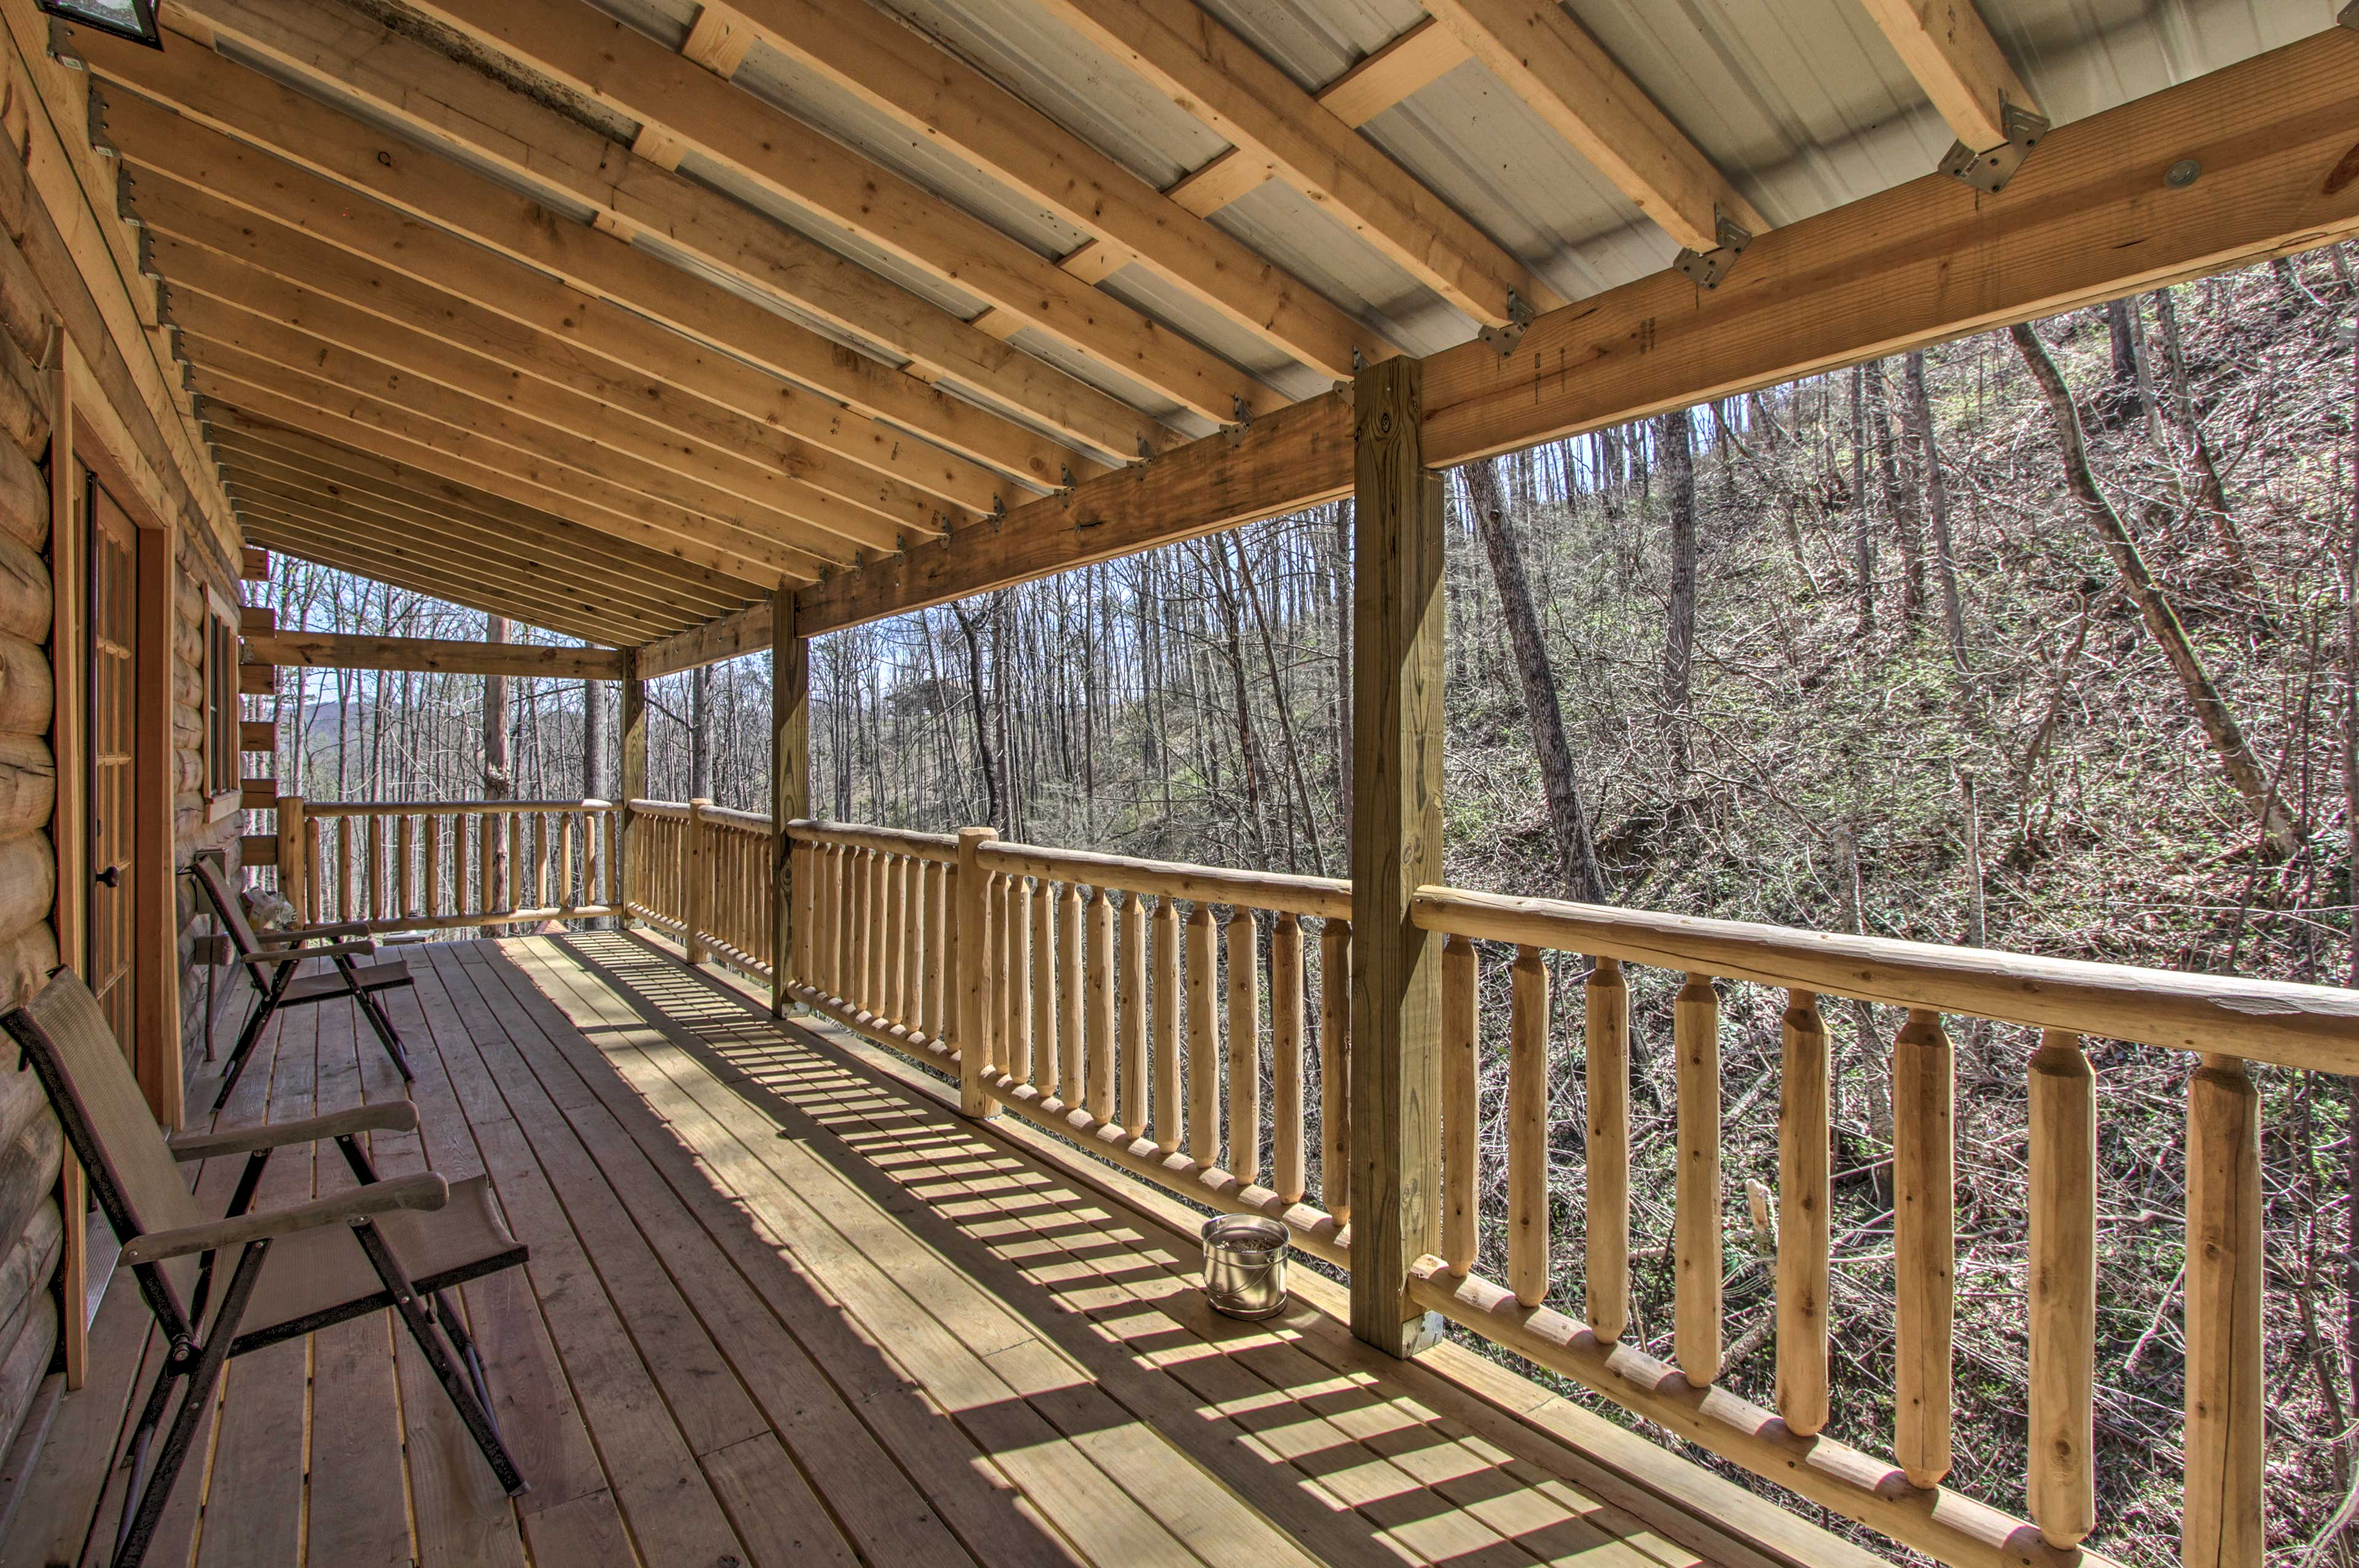 Unwind and enjoy views of the ravine that sit just next to the home.